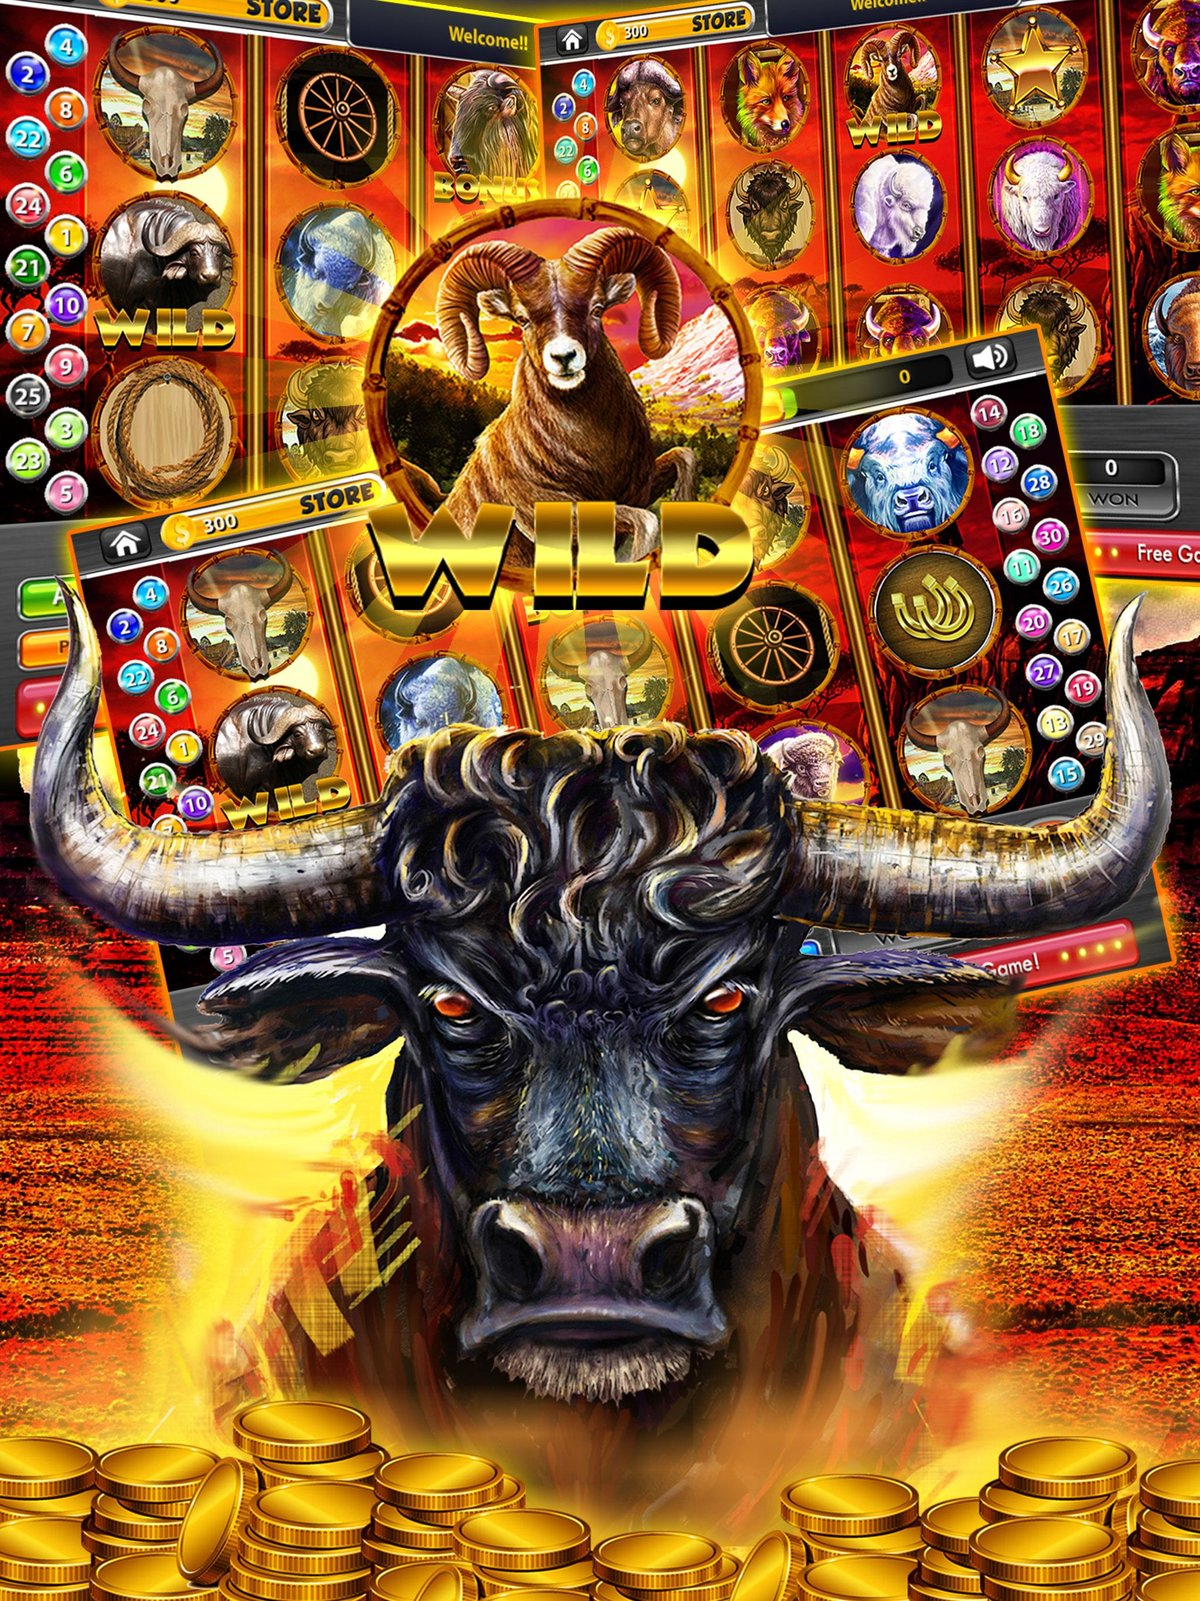 Buffalo slot machine android